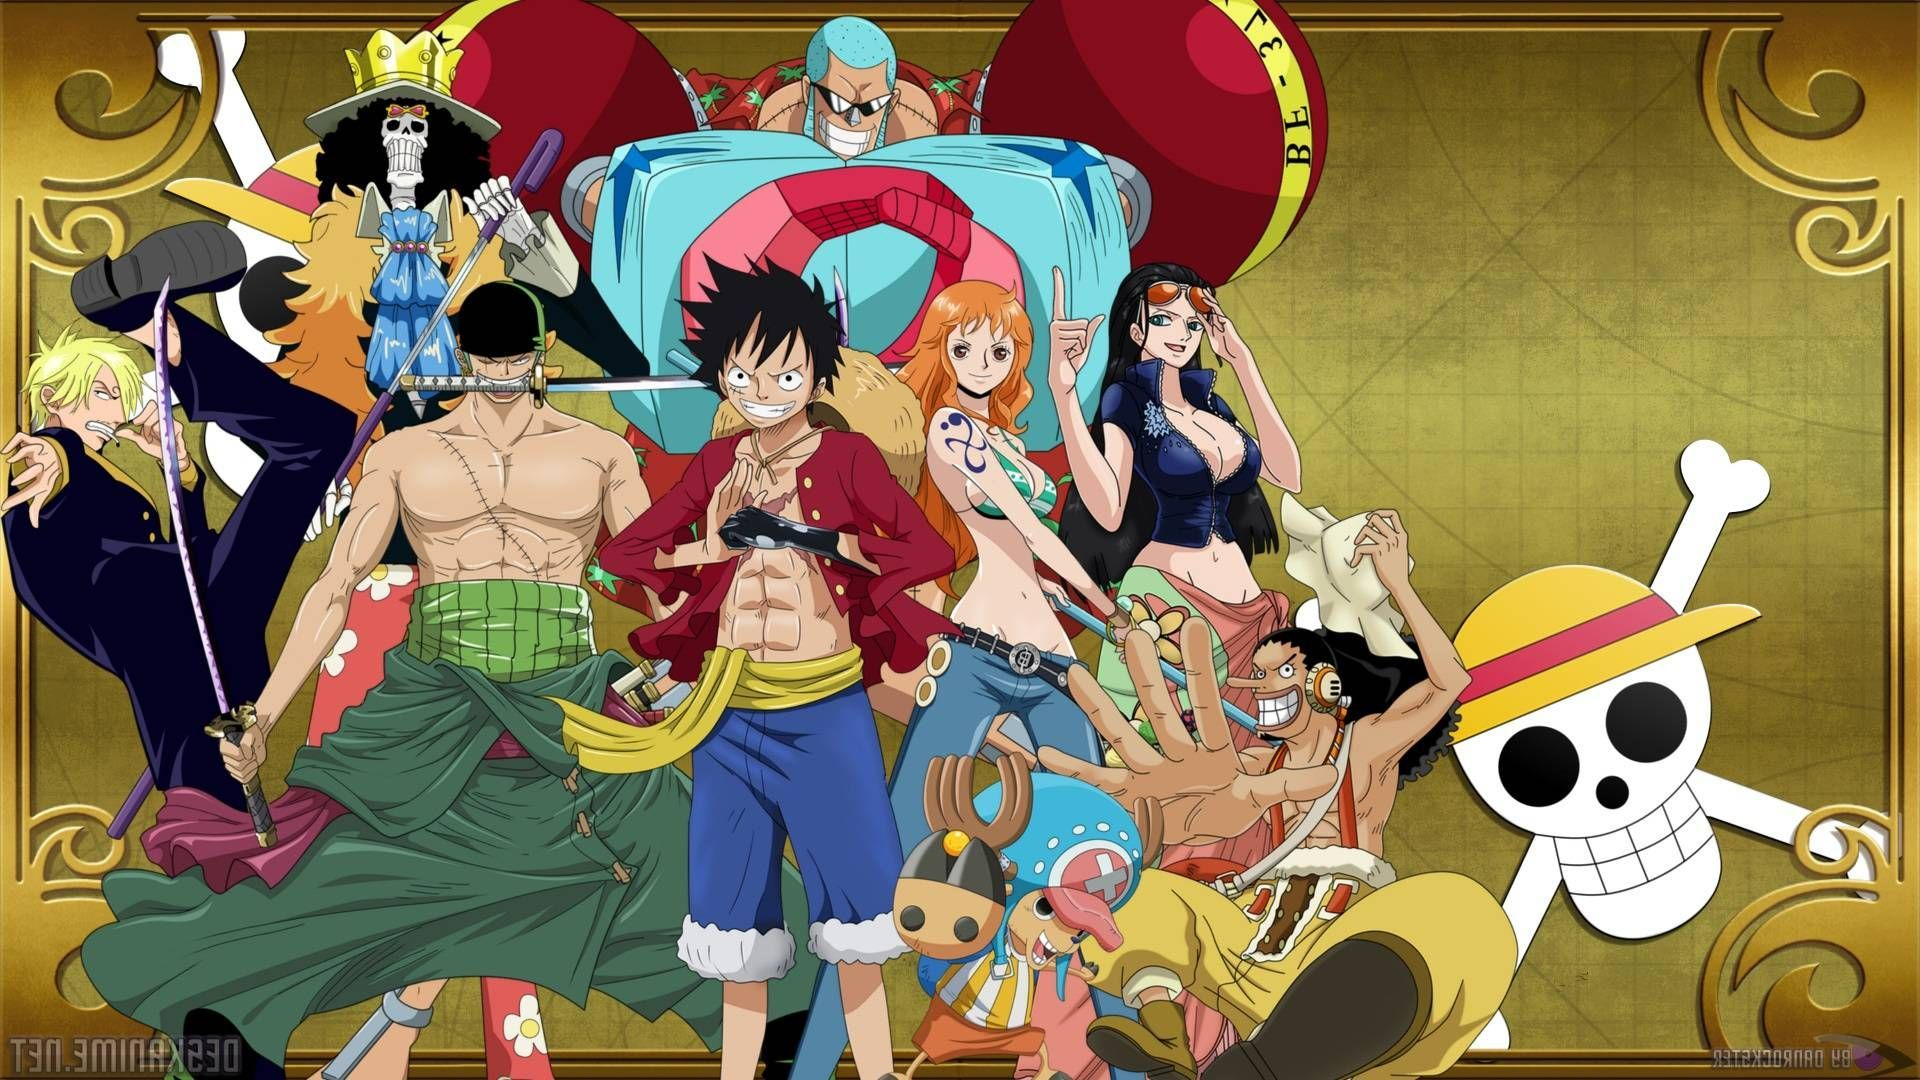 Wallpaper One Piece 1920x1080 Pin On Onepiece One Piece Hd Wallpaper 37210 Baltana On Hd Anime Wallpapers Android Wallpaper Anime One Piece Wallpaper Iphone